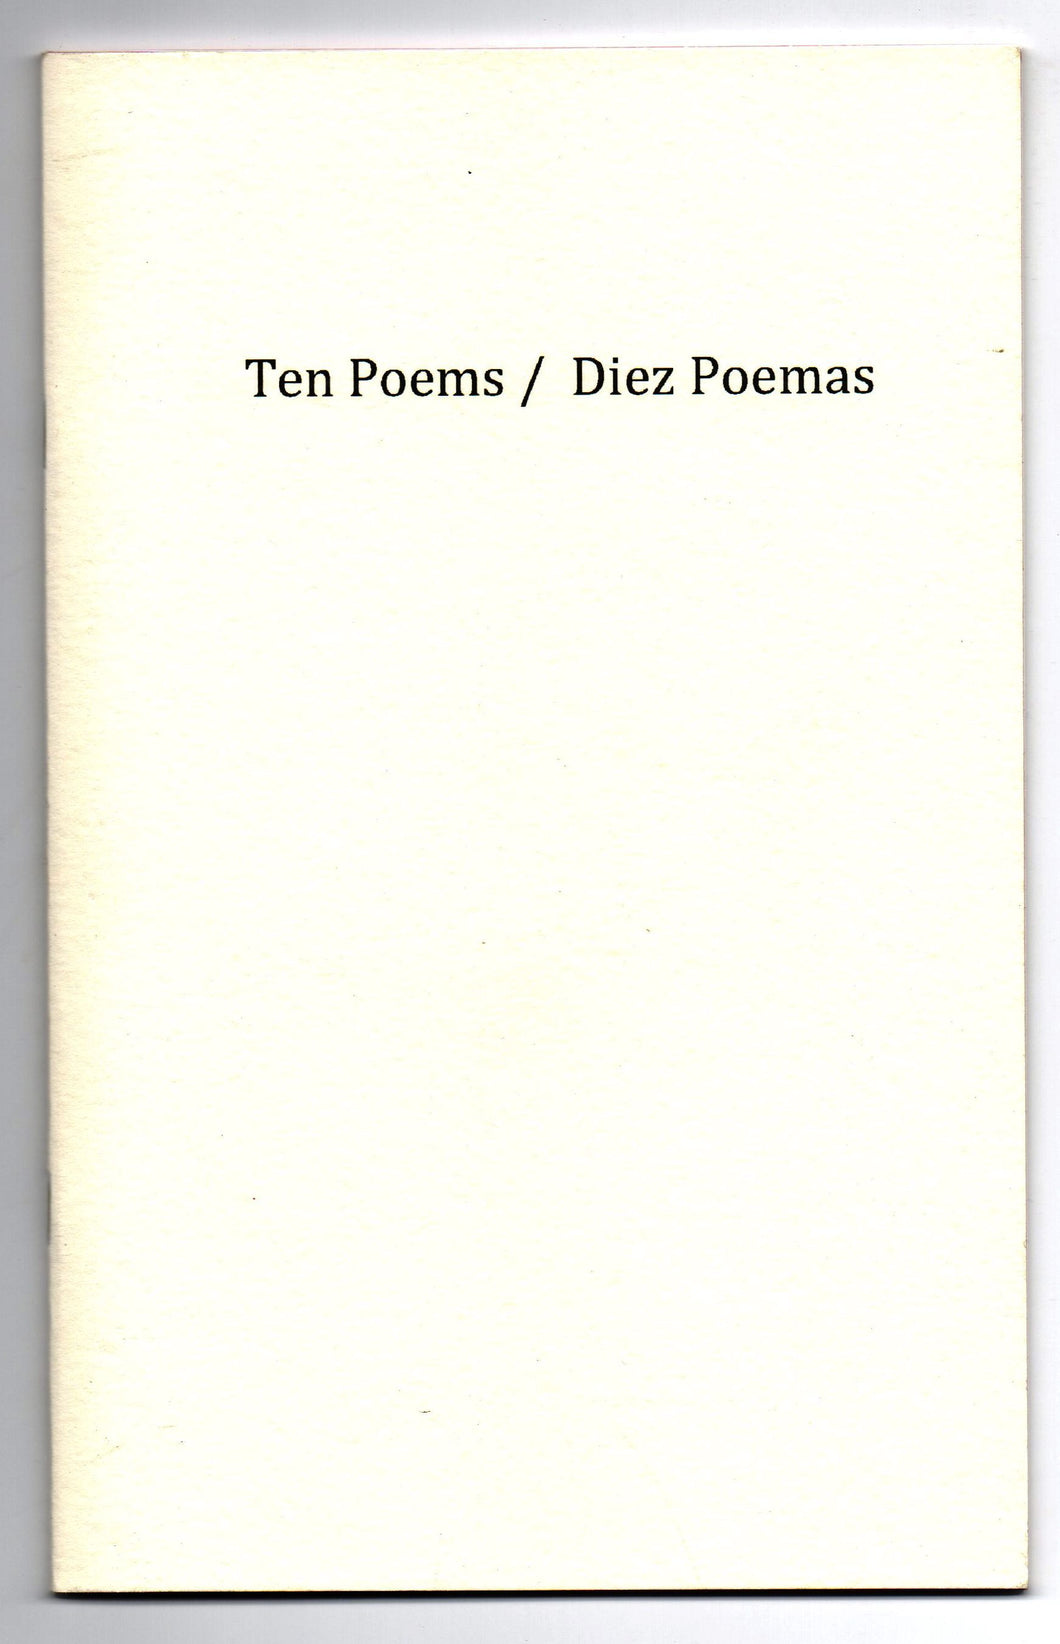 Ten Poems/Diez Poemas